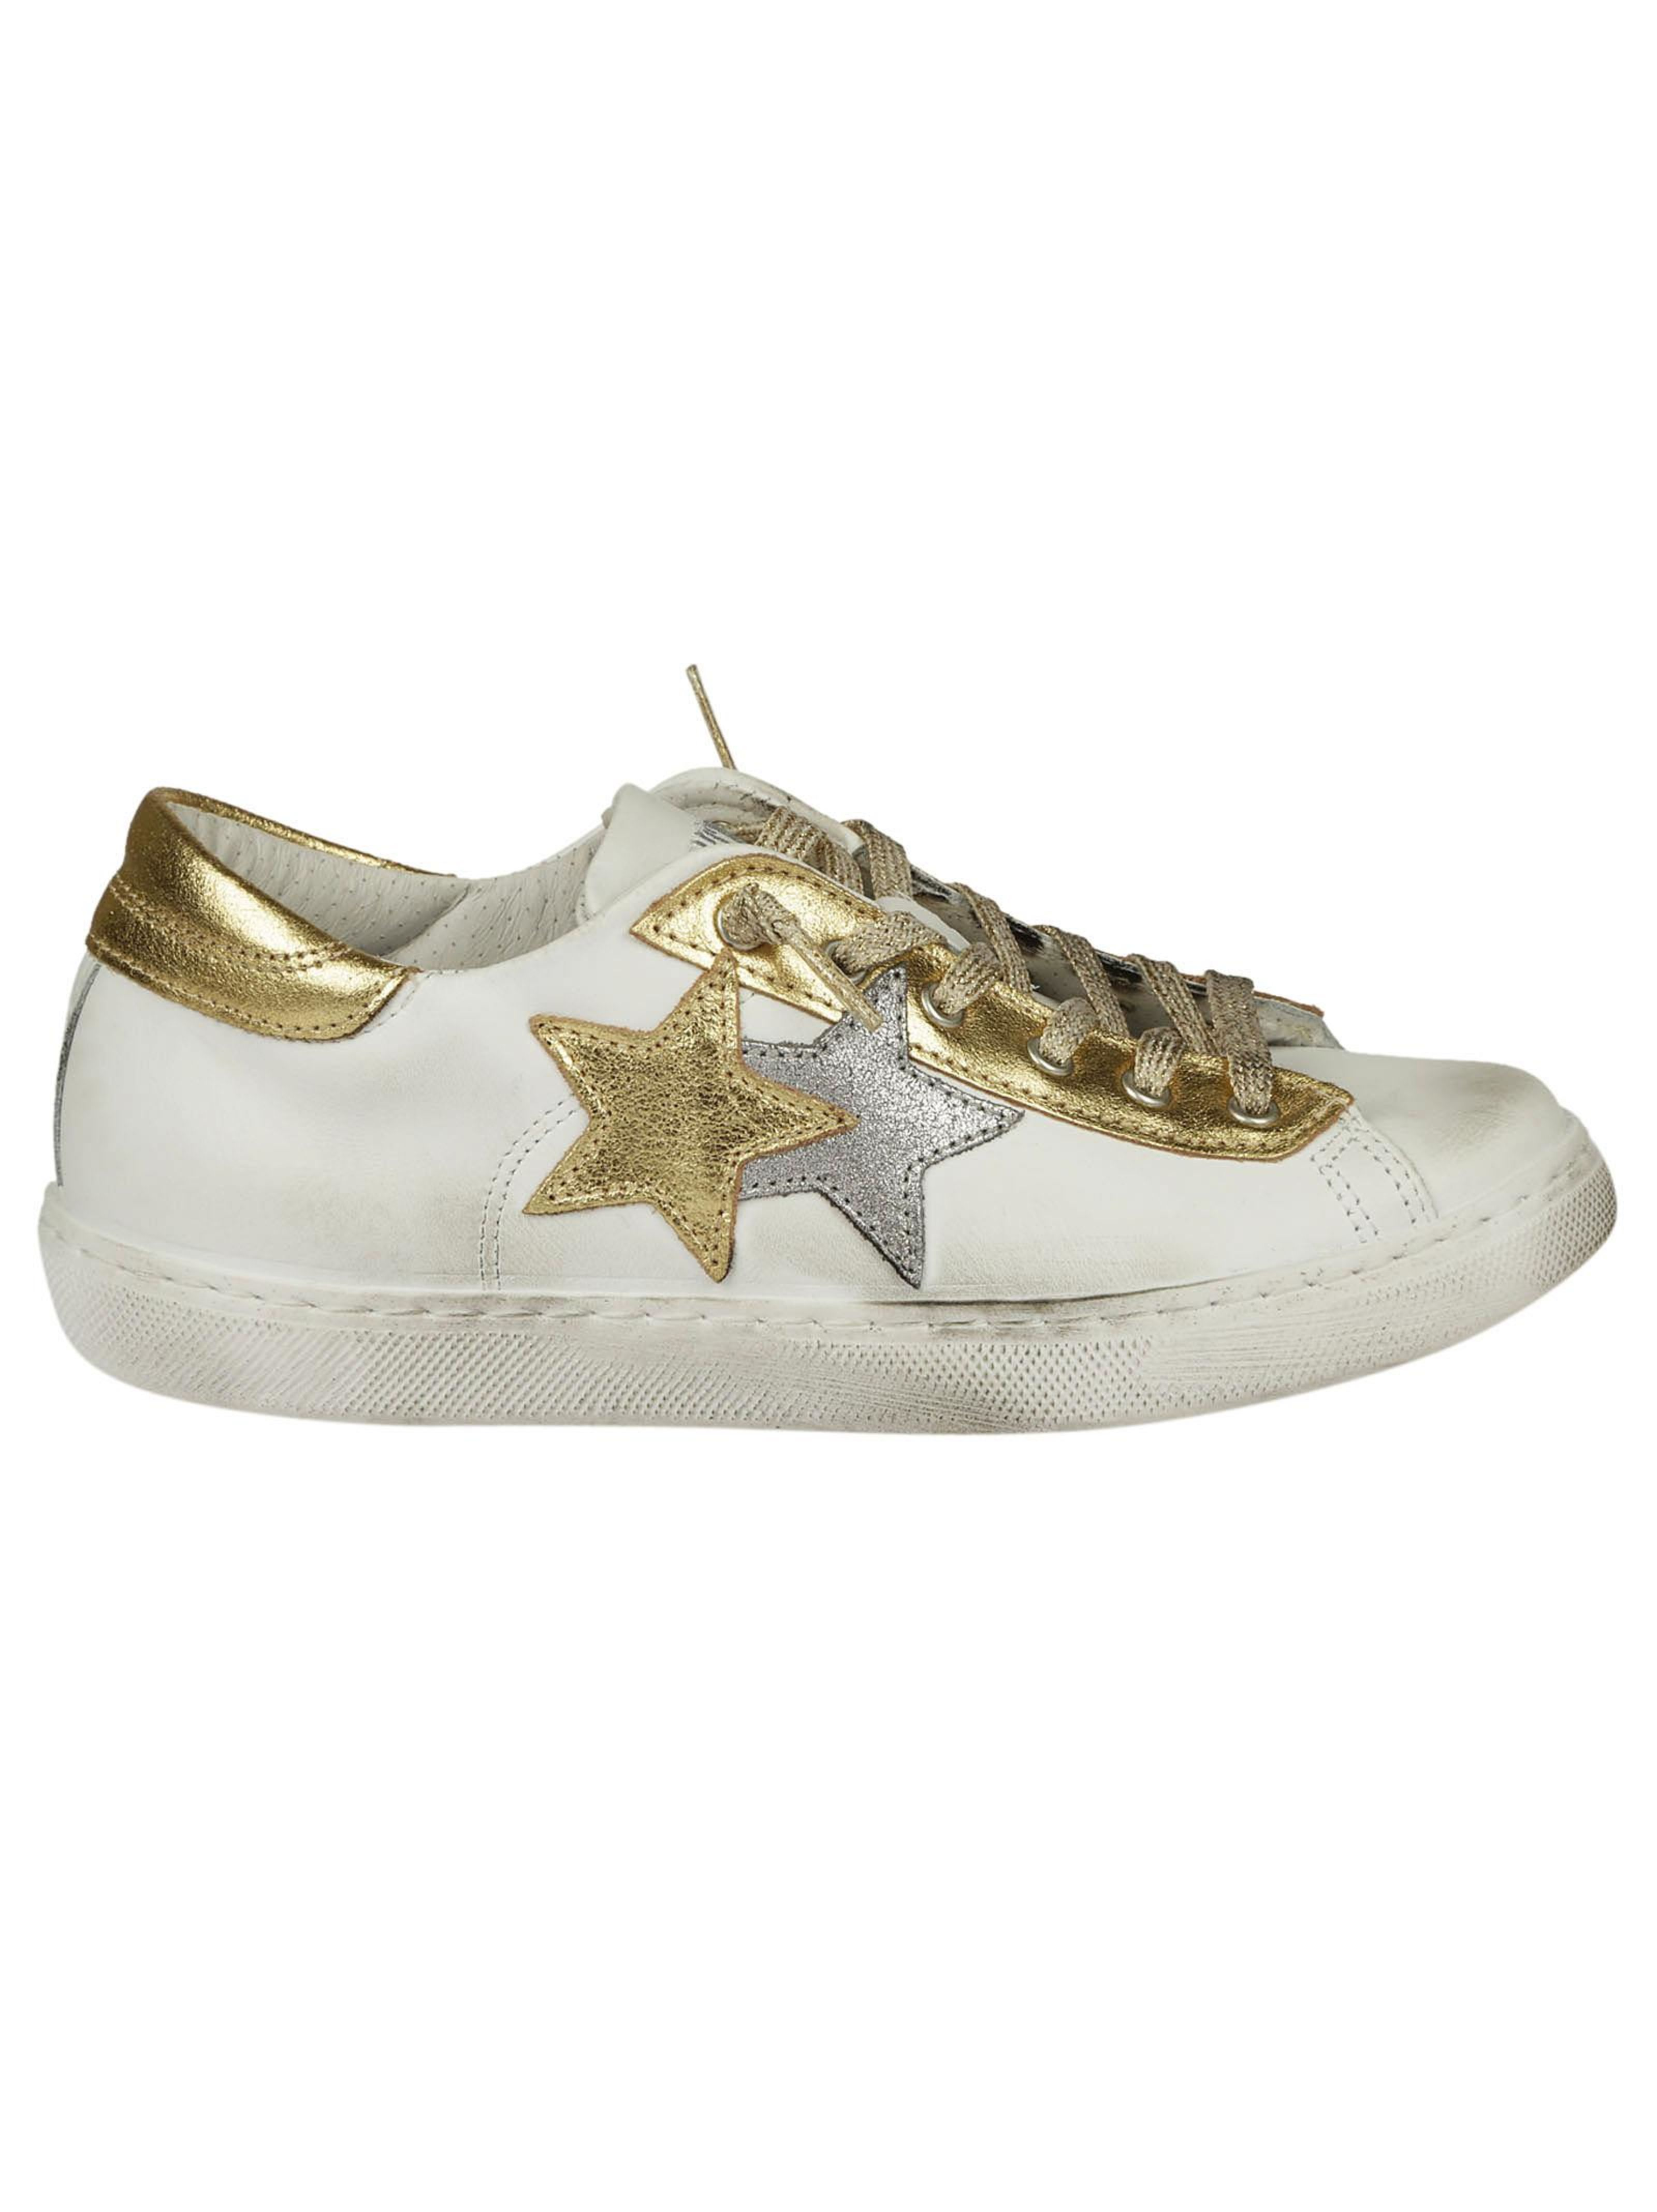 2star female 2star lace up sneakers